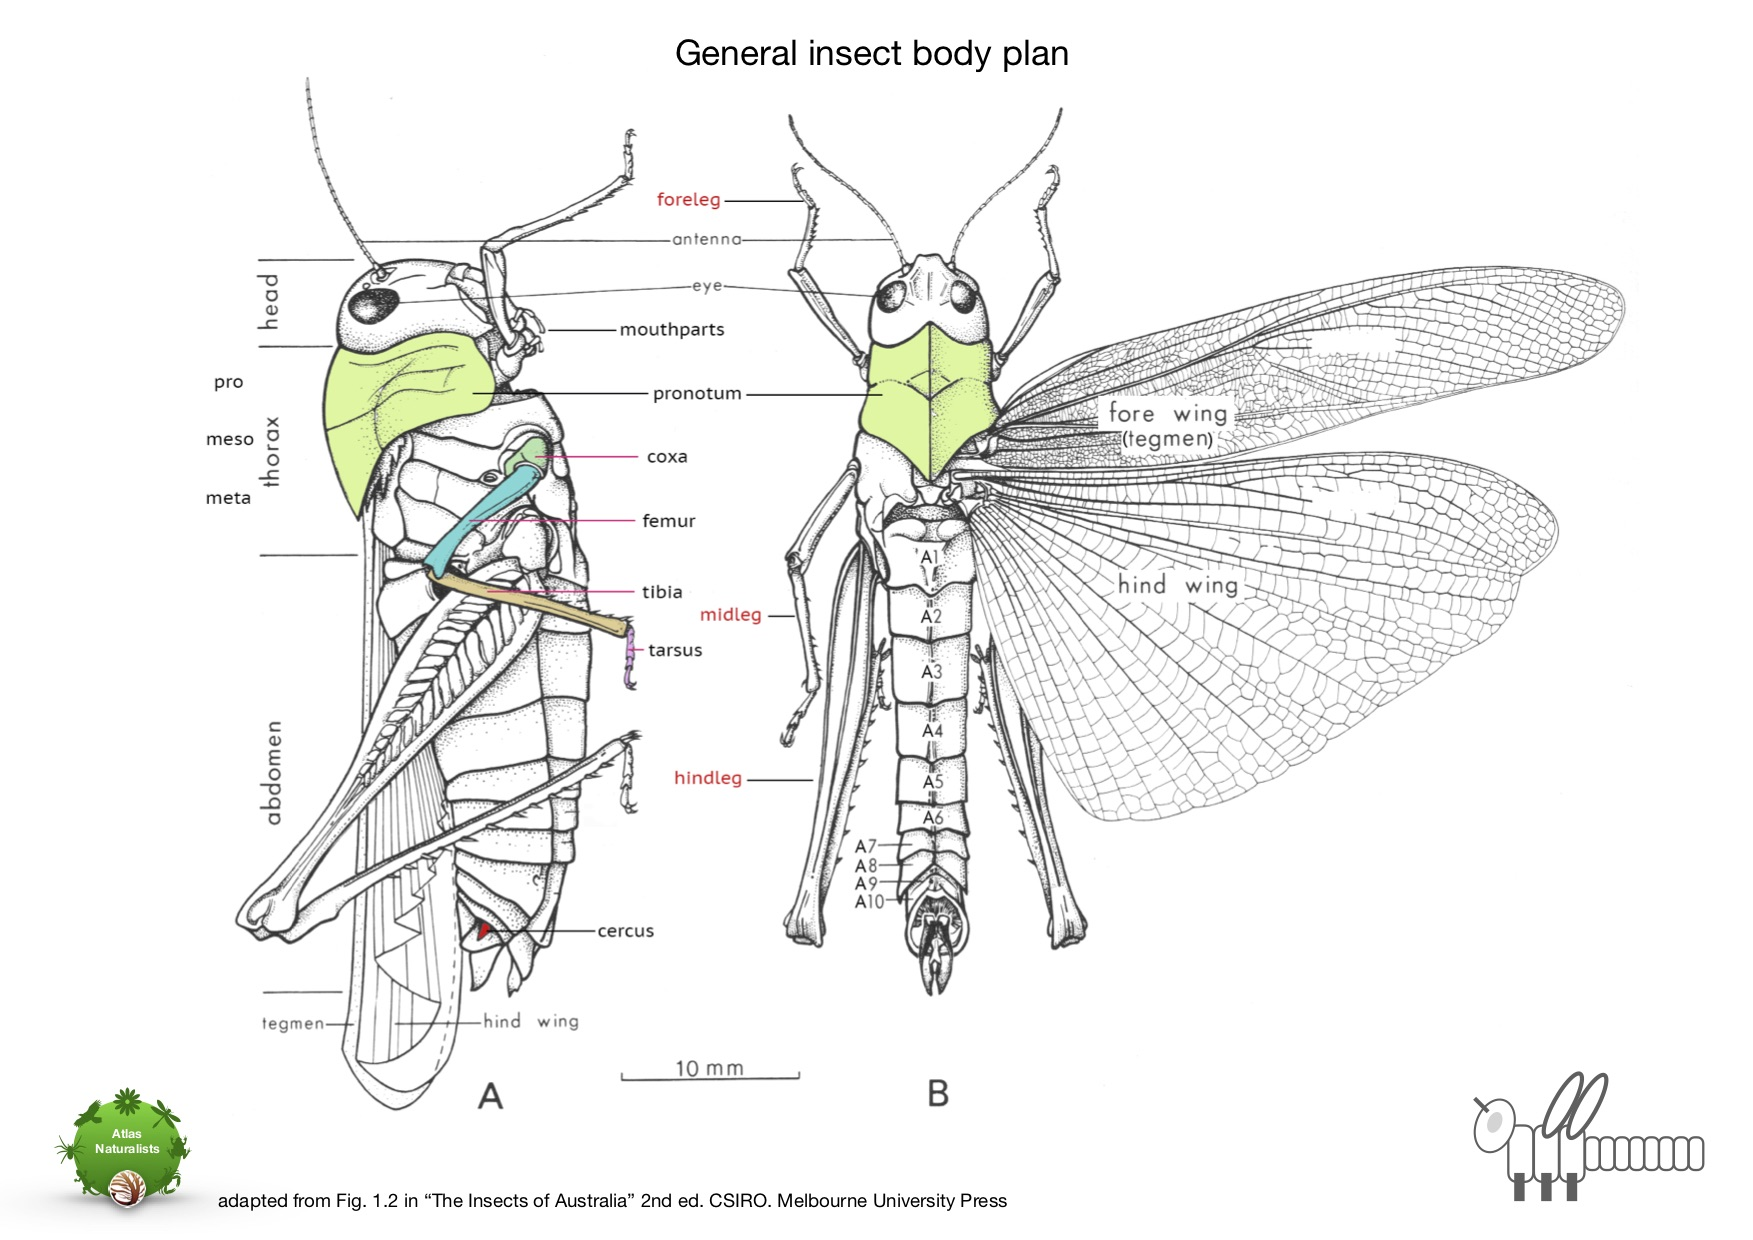 Download insect body plan as a pdf    (1.2mb)